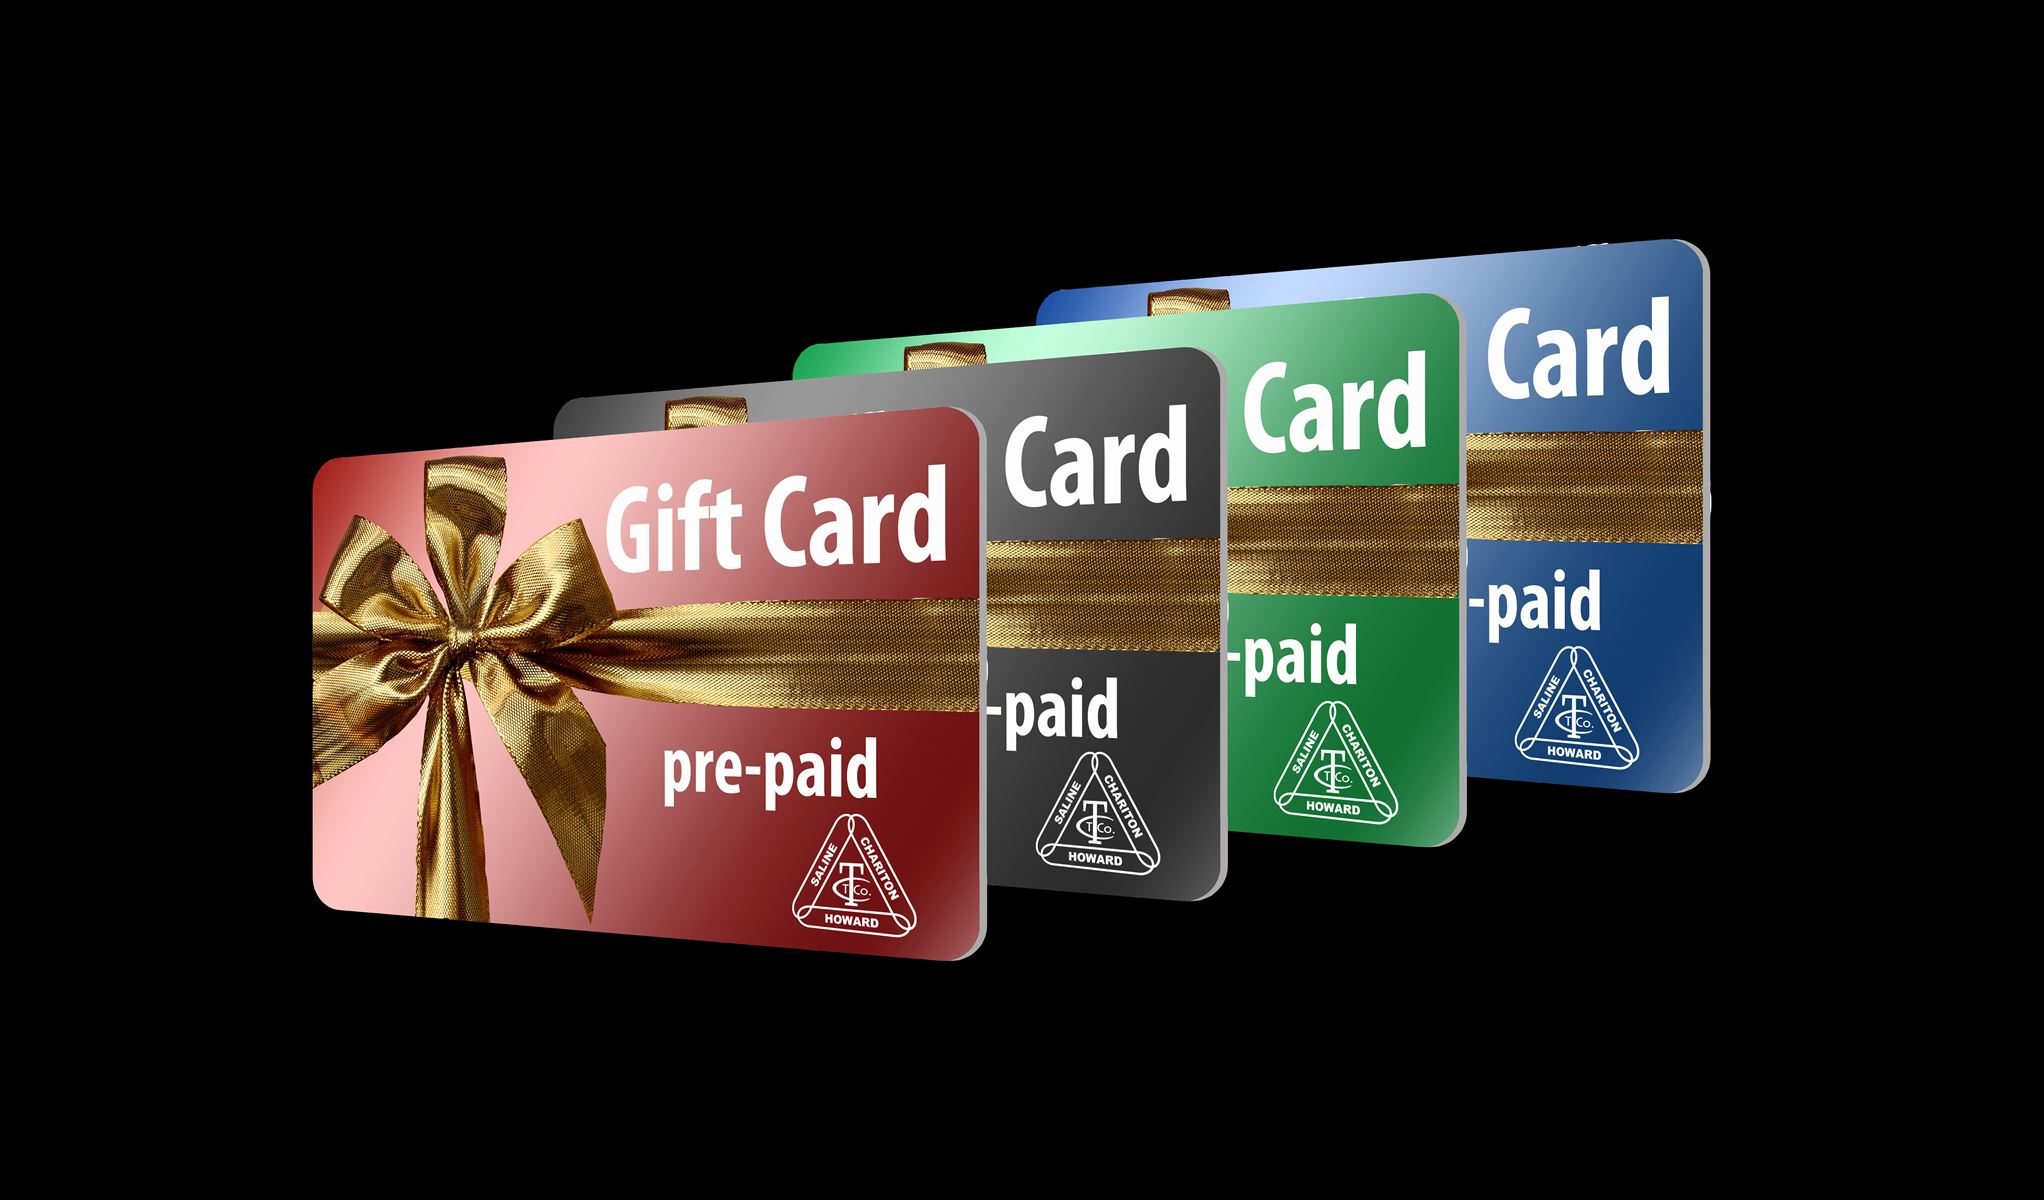 Pre-Paid Gift Card Image